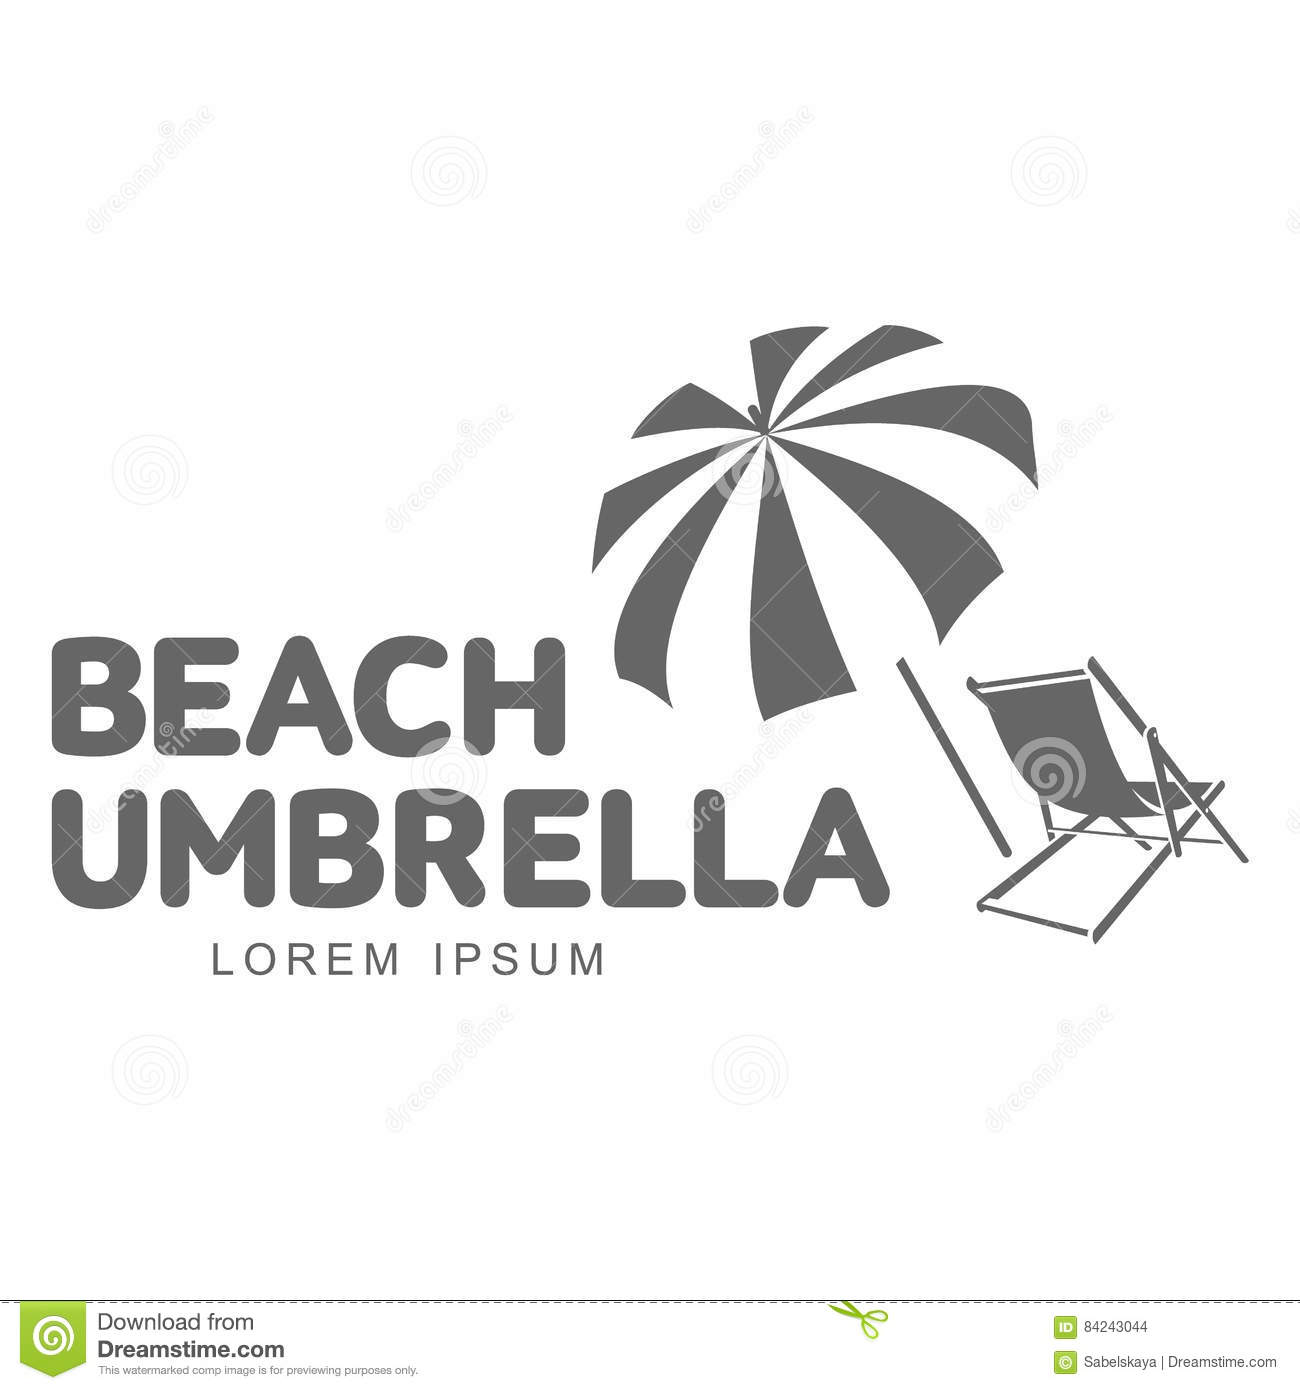 Chair beach umbrella and chair black and white - Beach Umbrella And Chair Black And White Logo Template With Beach Umbrella And Sun Bathing Download